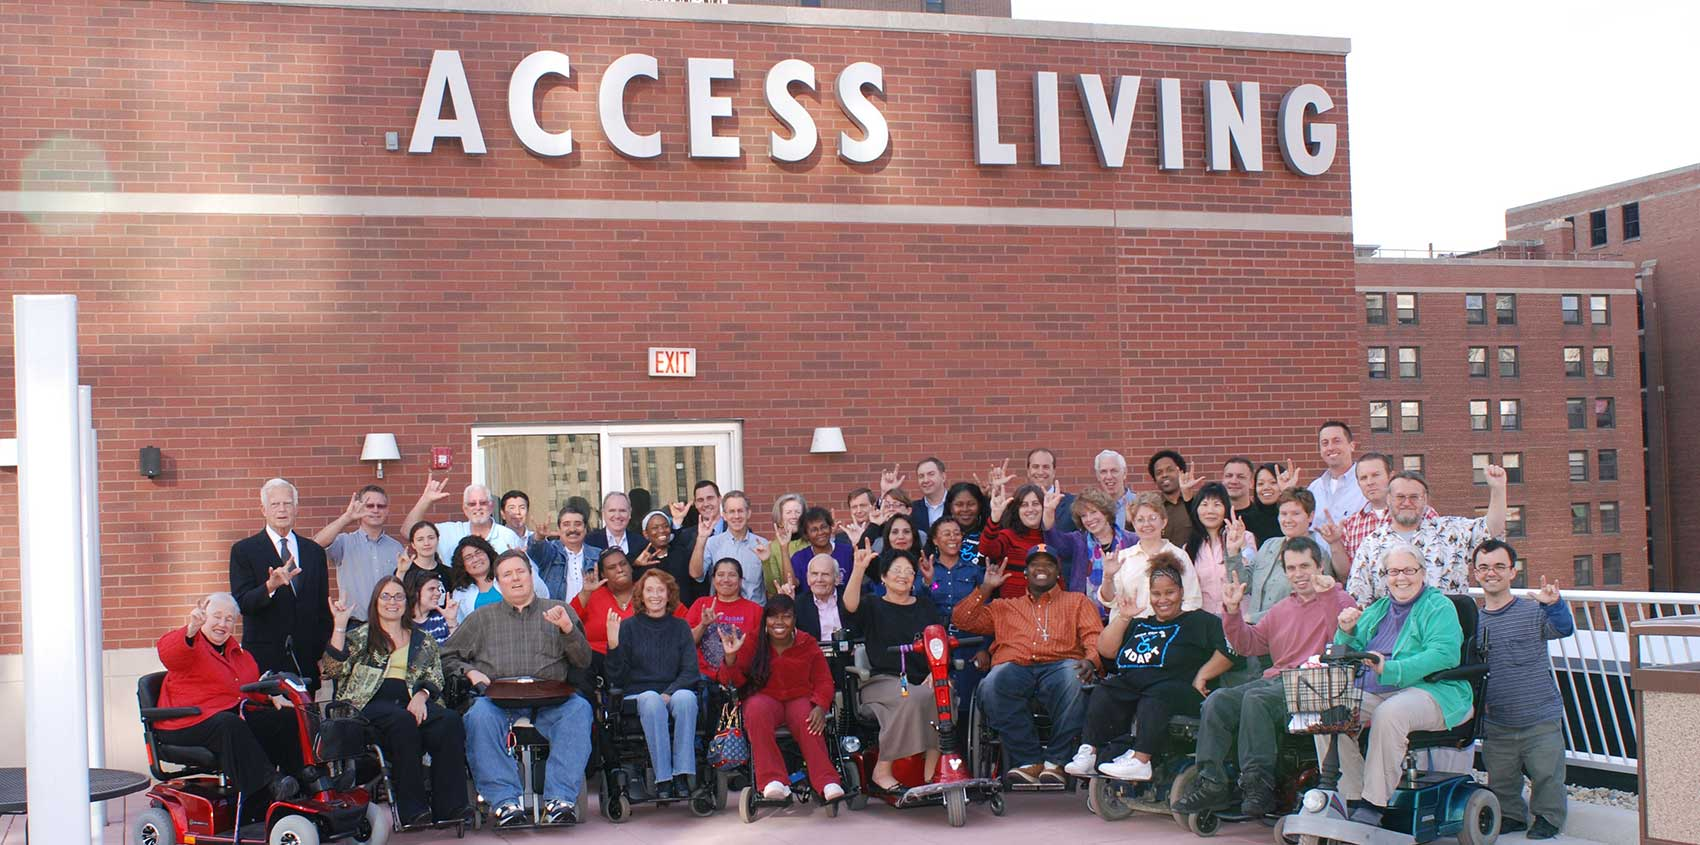 Photo of large group posing in front of the Access Living building.